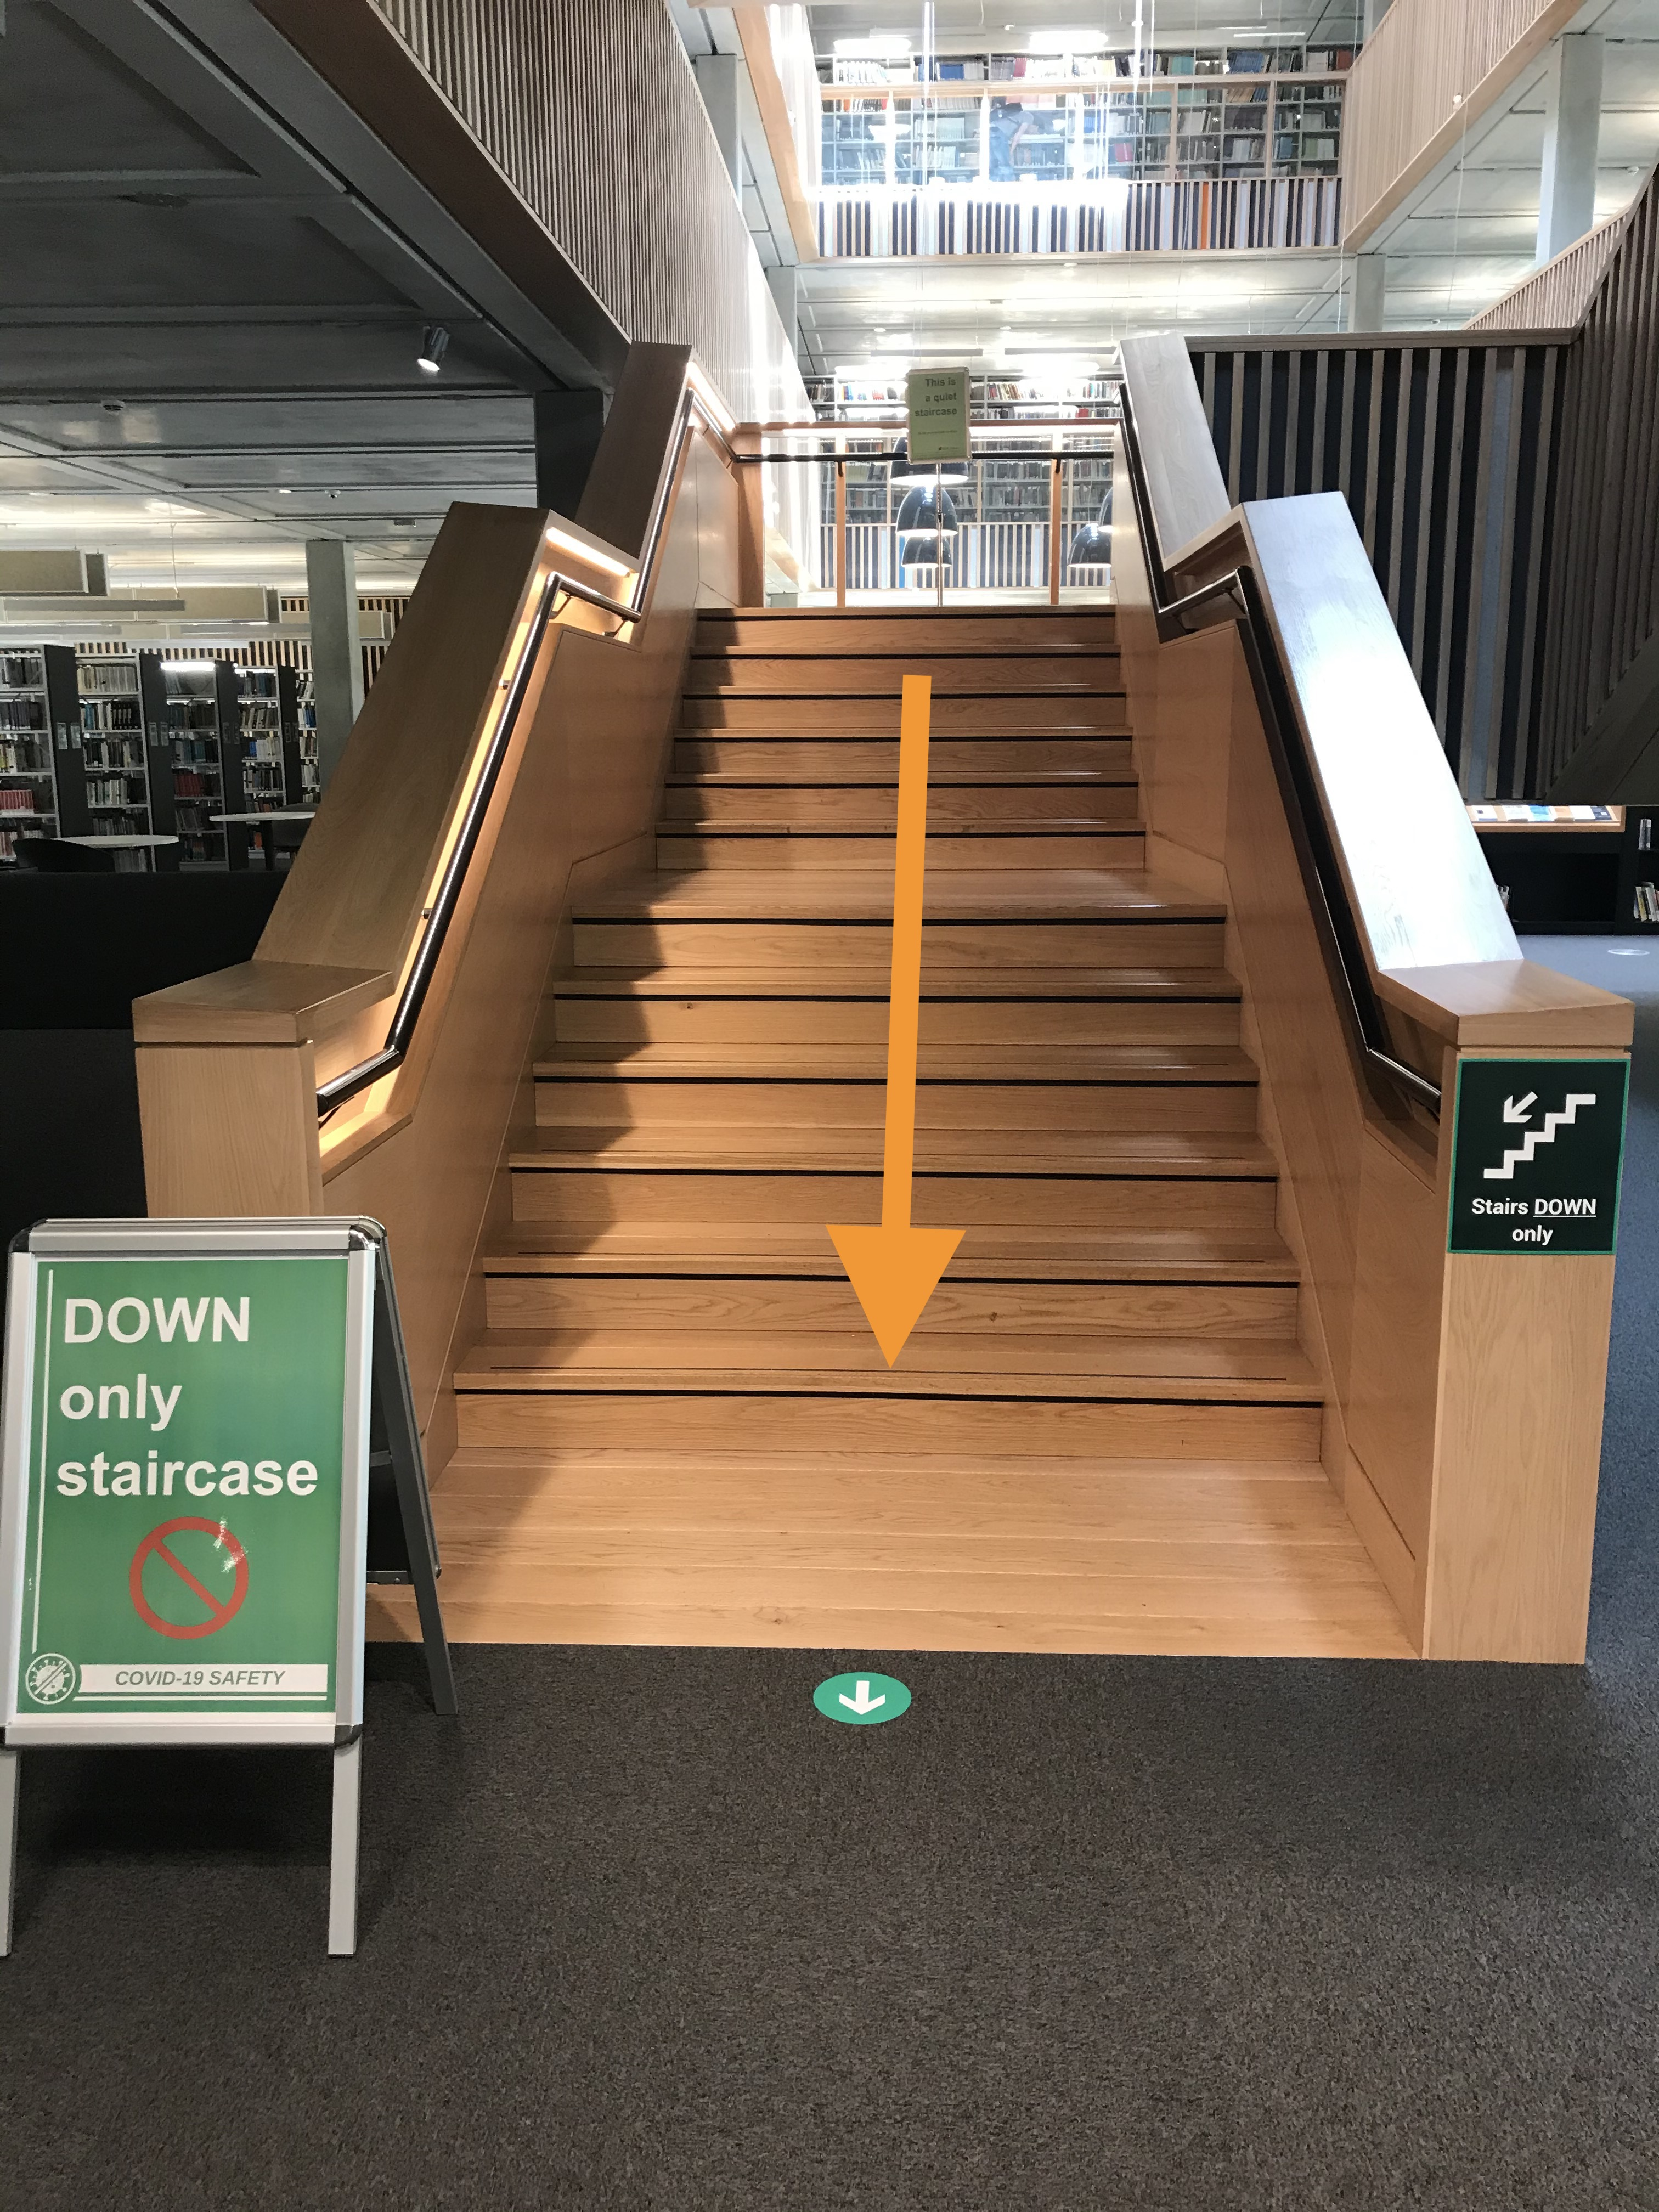 central wooden staircase with signage to show it is a Down staircase only